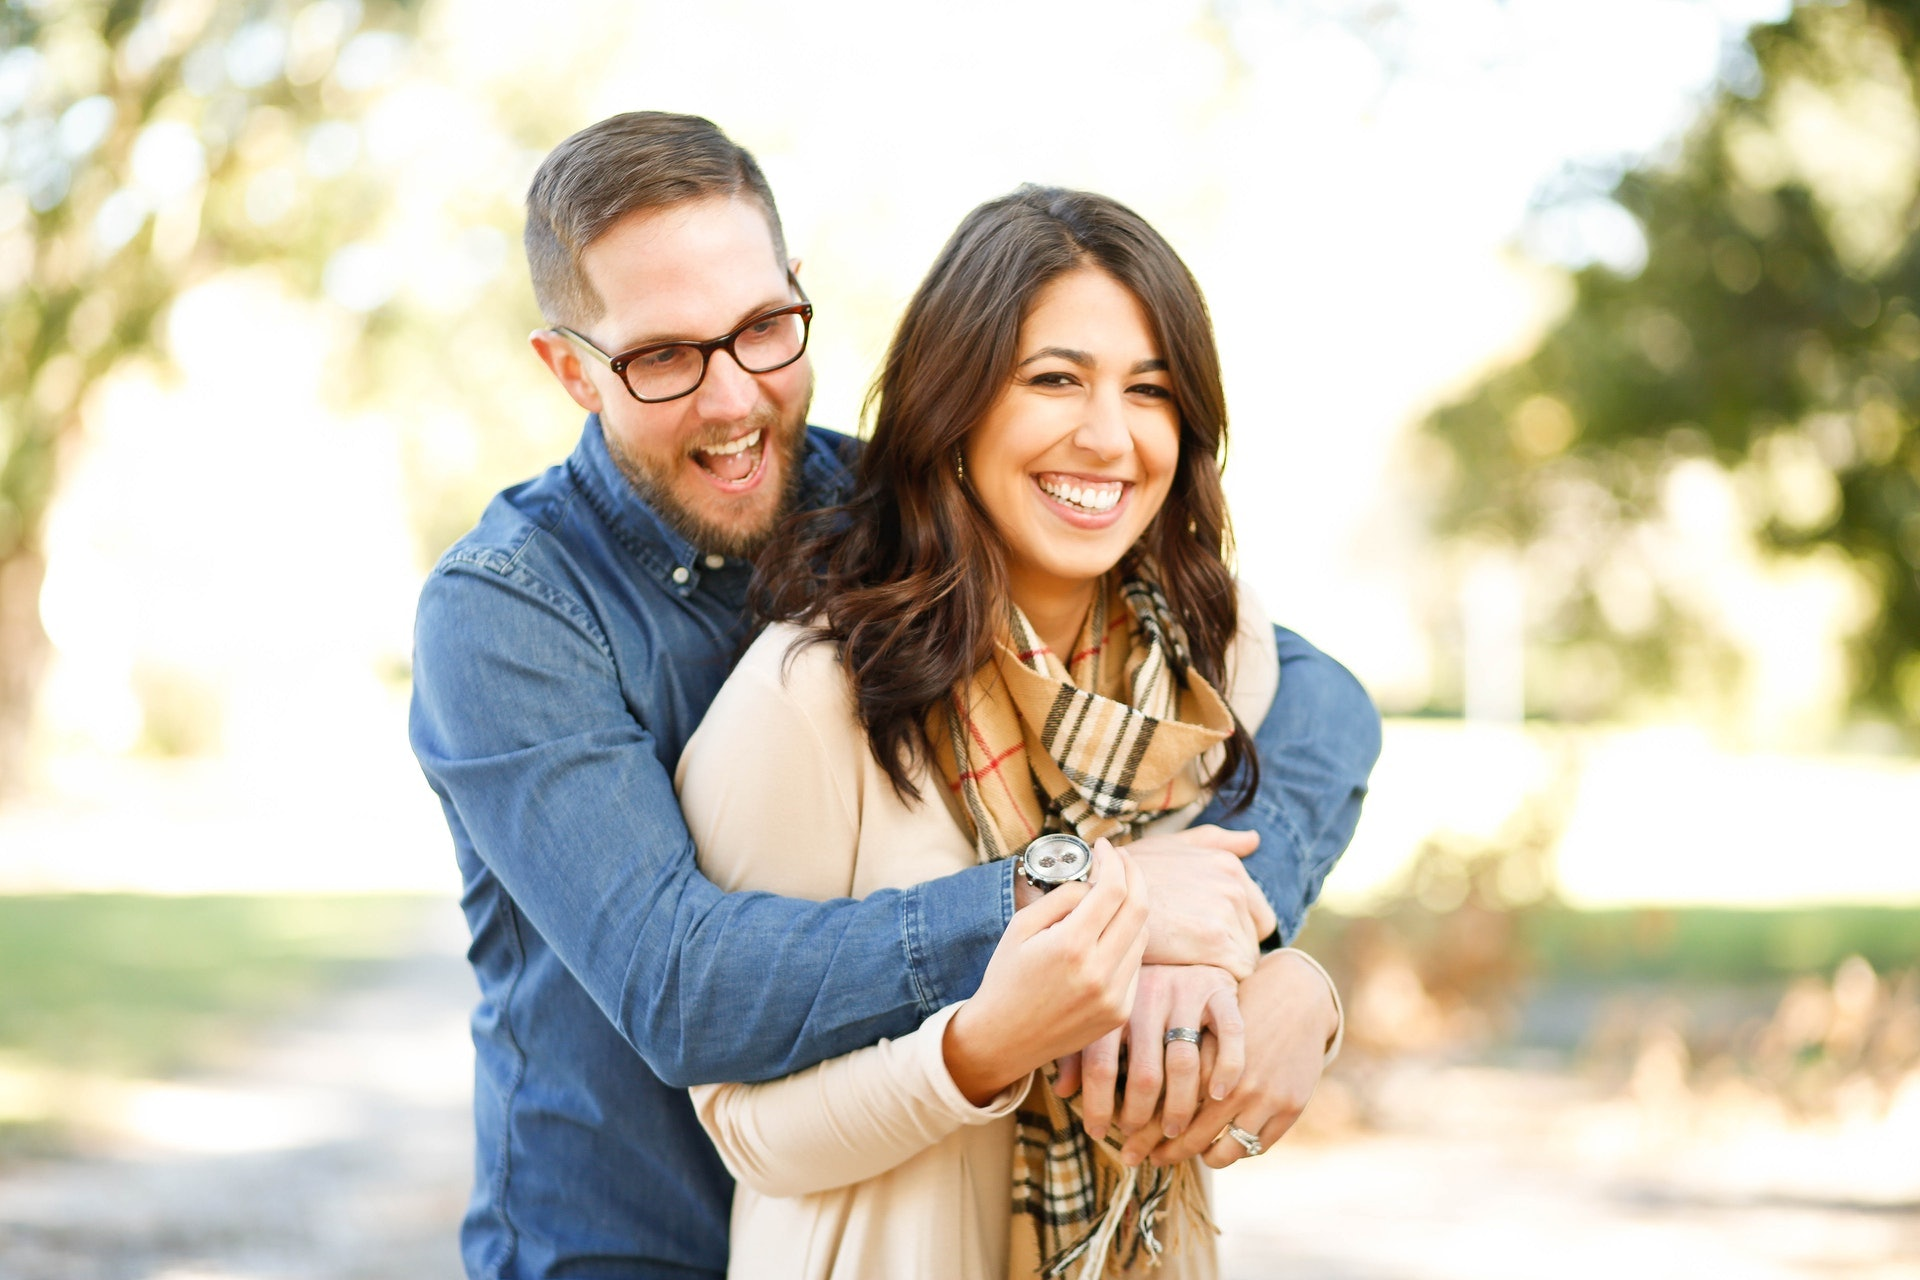 7 factors to determine how important you are to a man